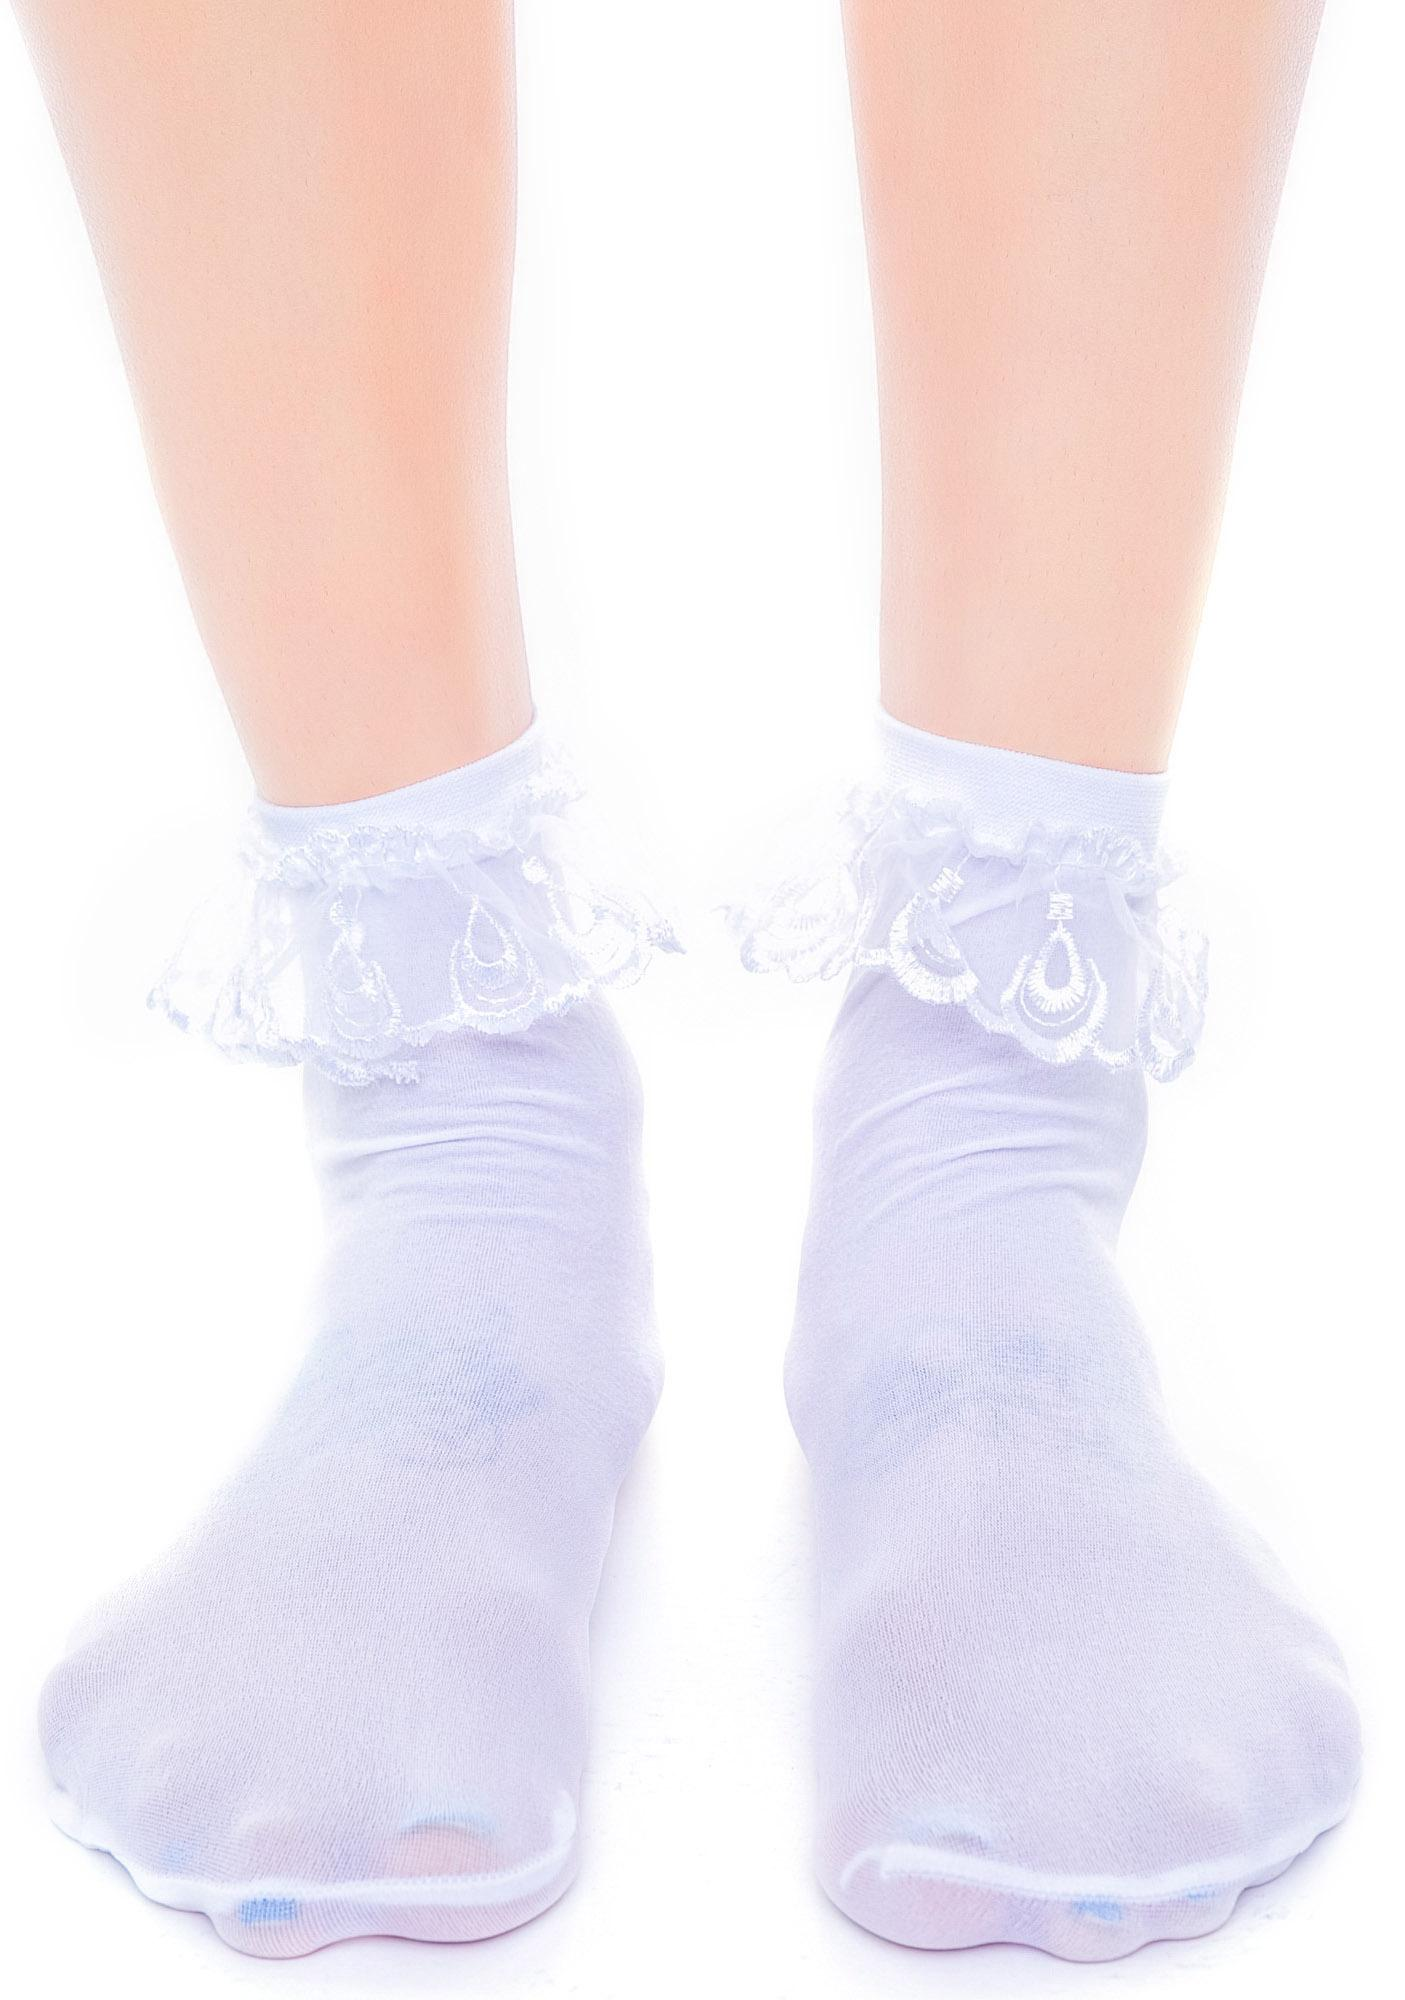 how to put lace on socks